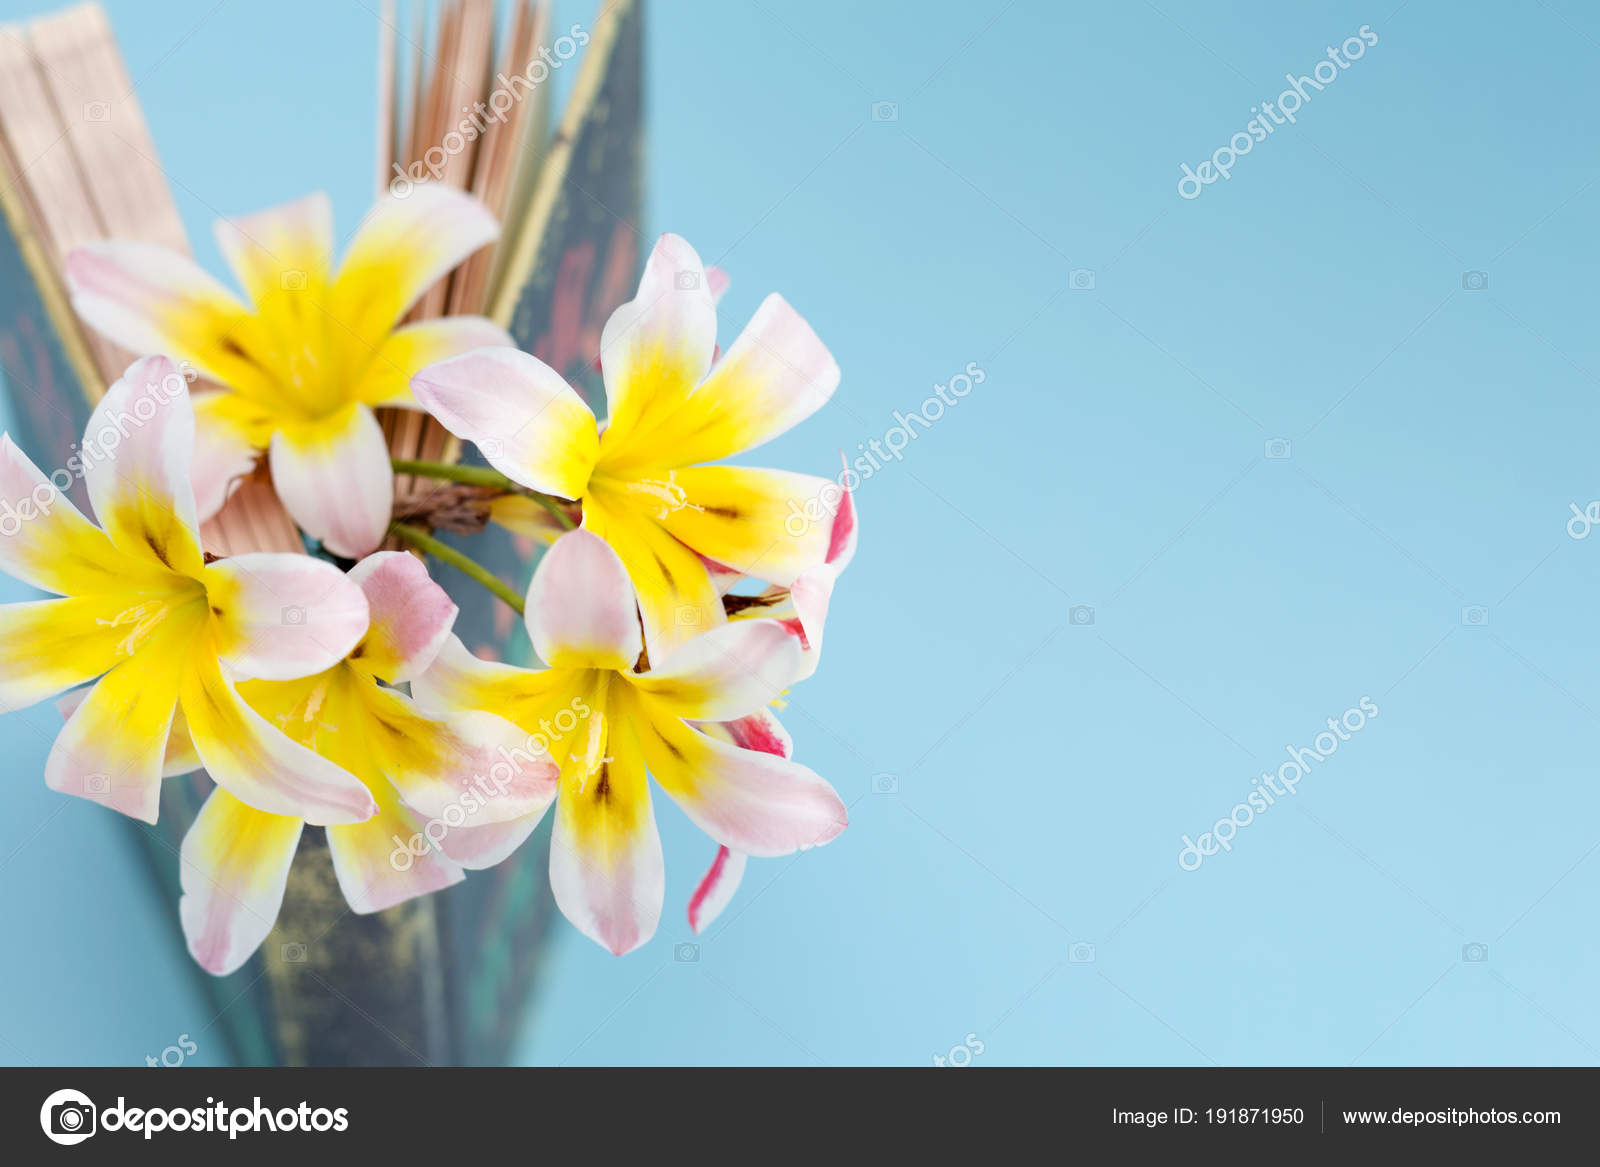 Colorful Spring Flowers Inbetween Pages Of Standing And Slightly